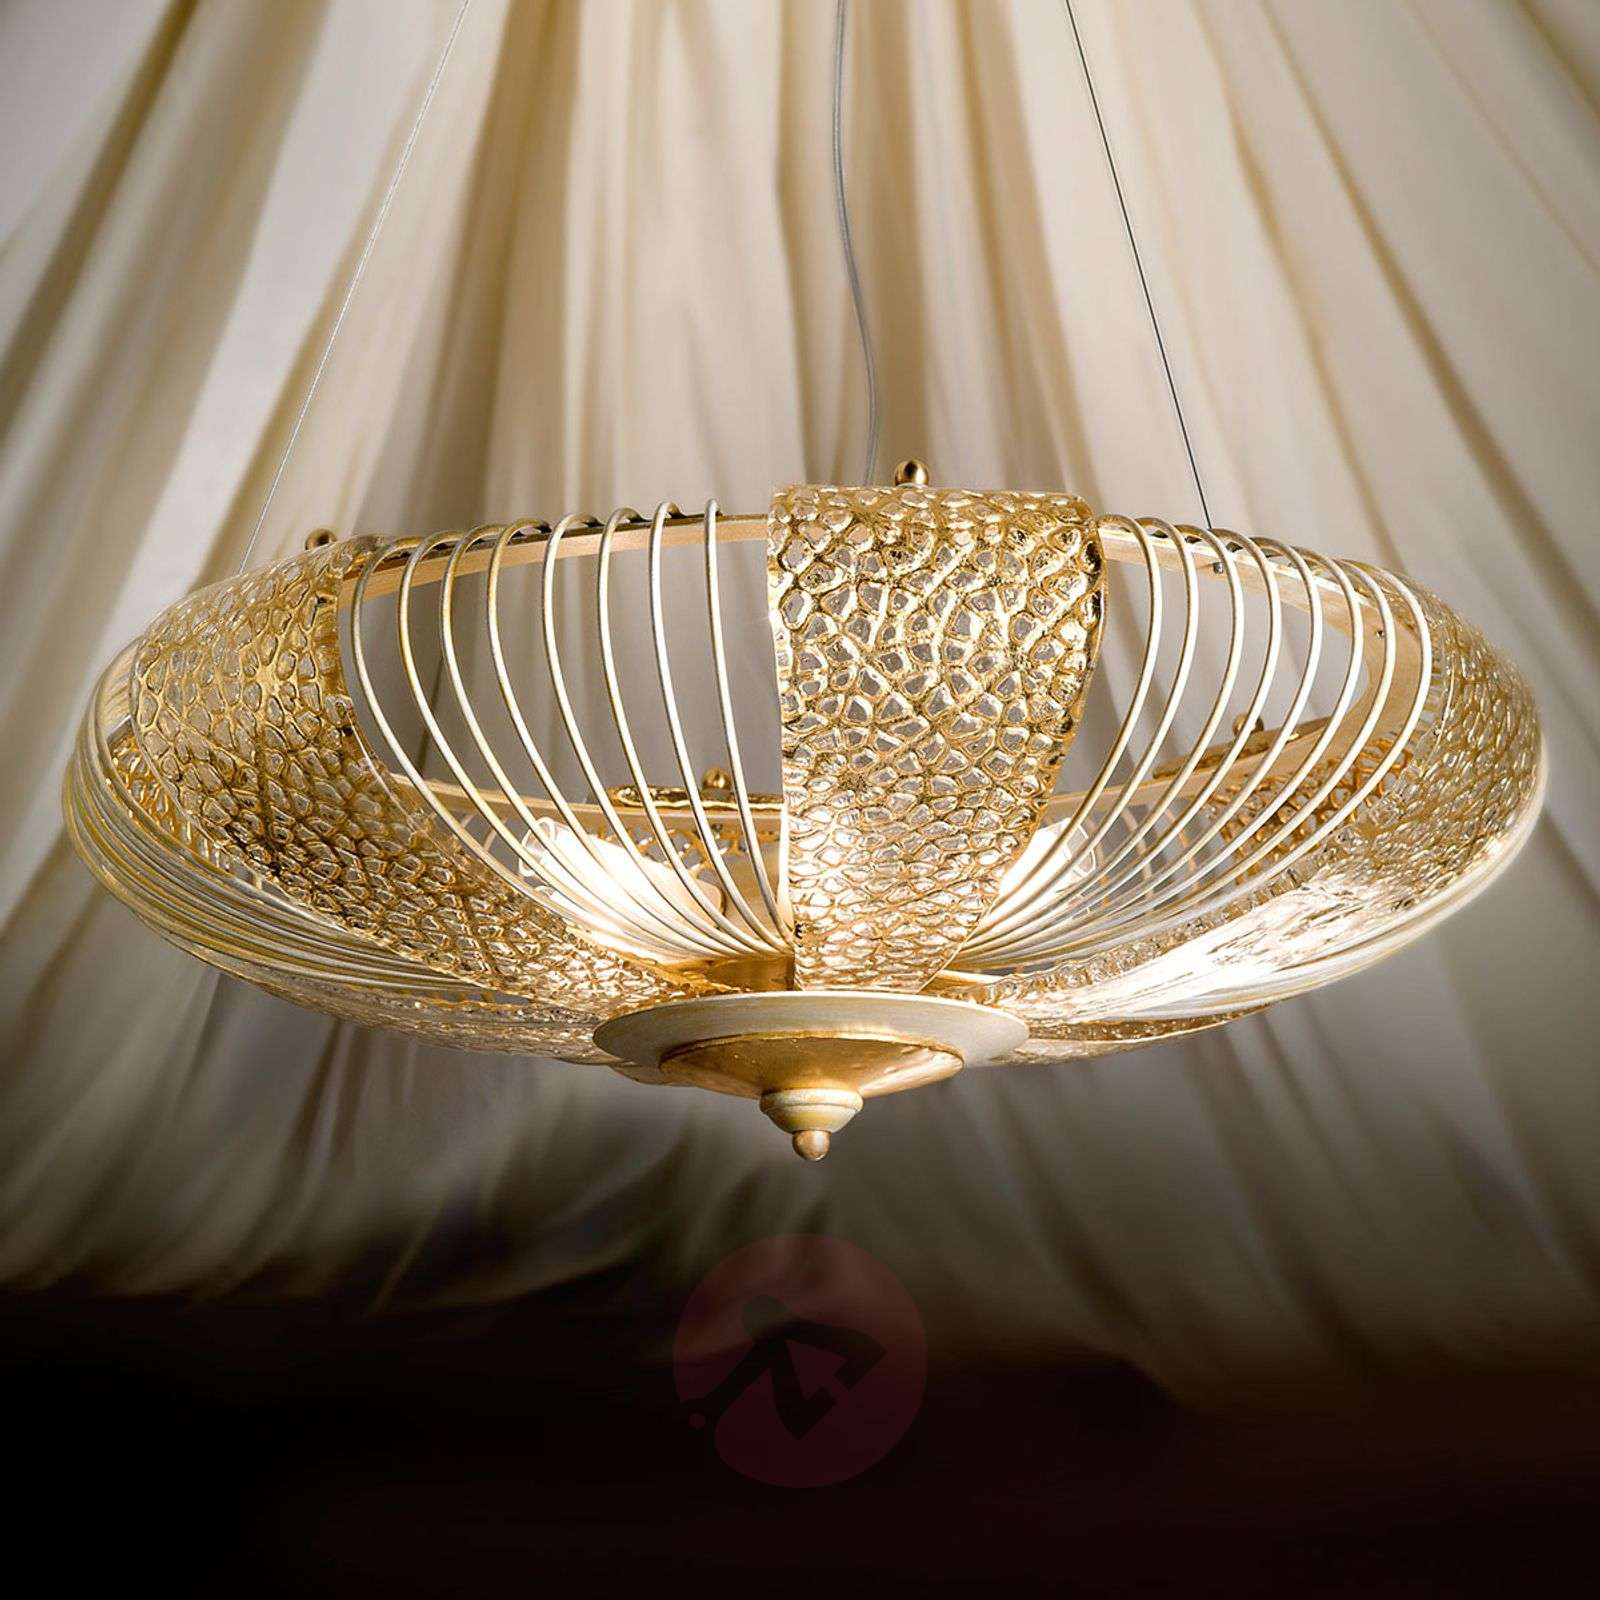 Gold etched hanging light Marrakech-6532090-01